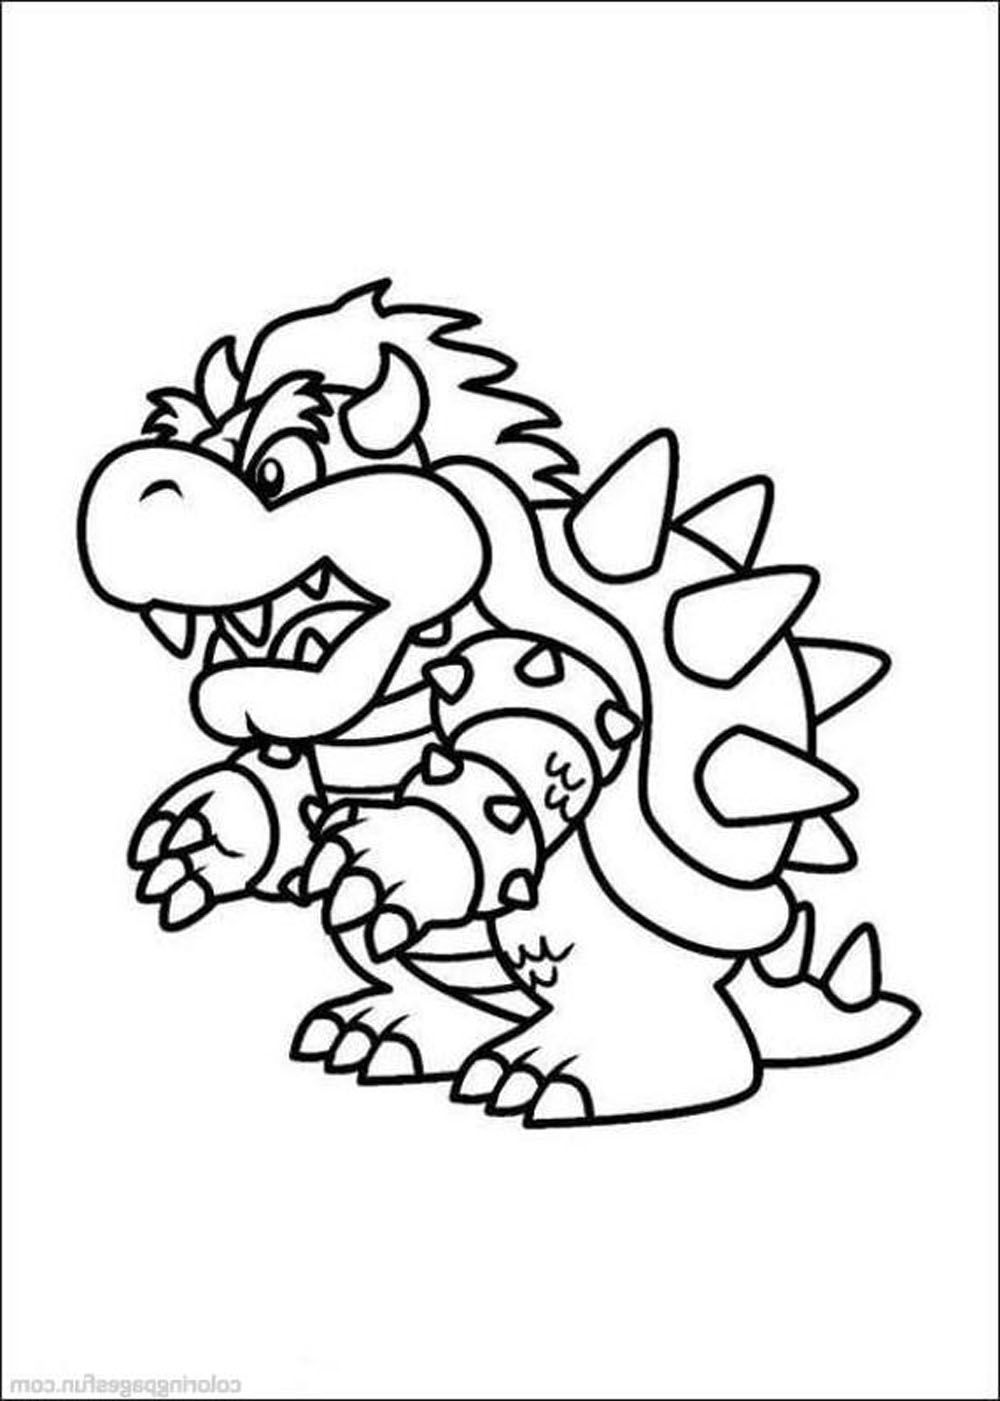 Coloring Pages Super Mario Birthdays Mario Coloring Pages Super